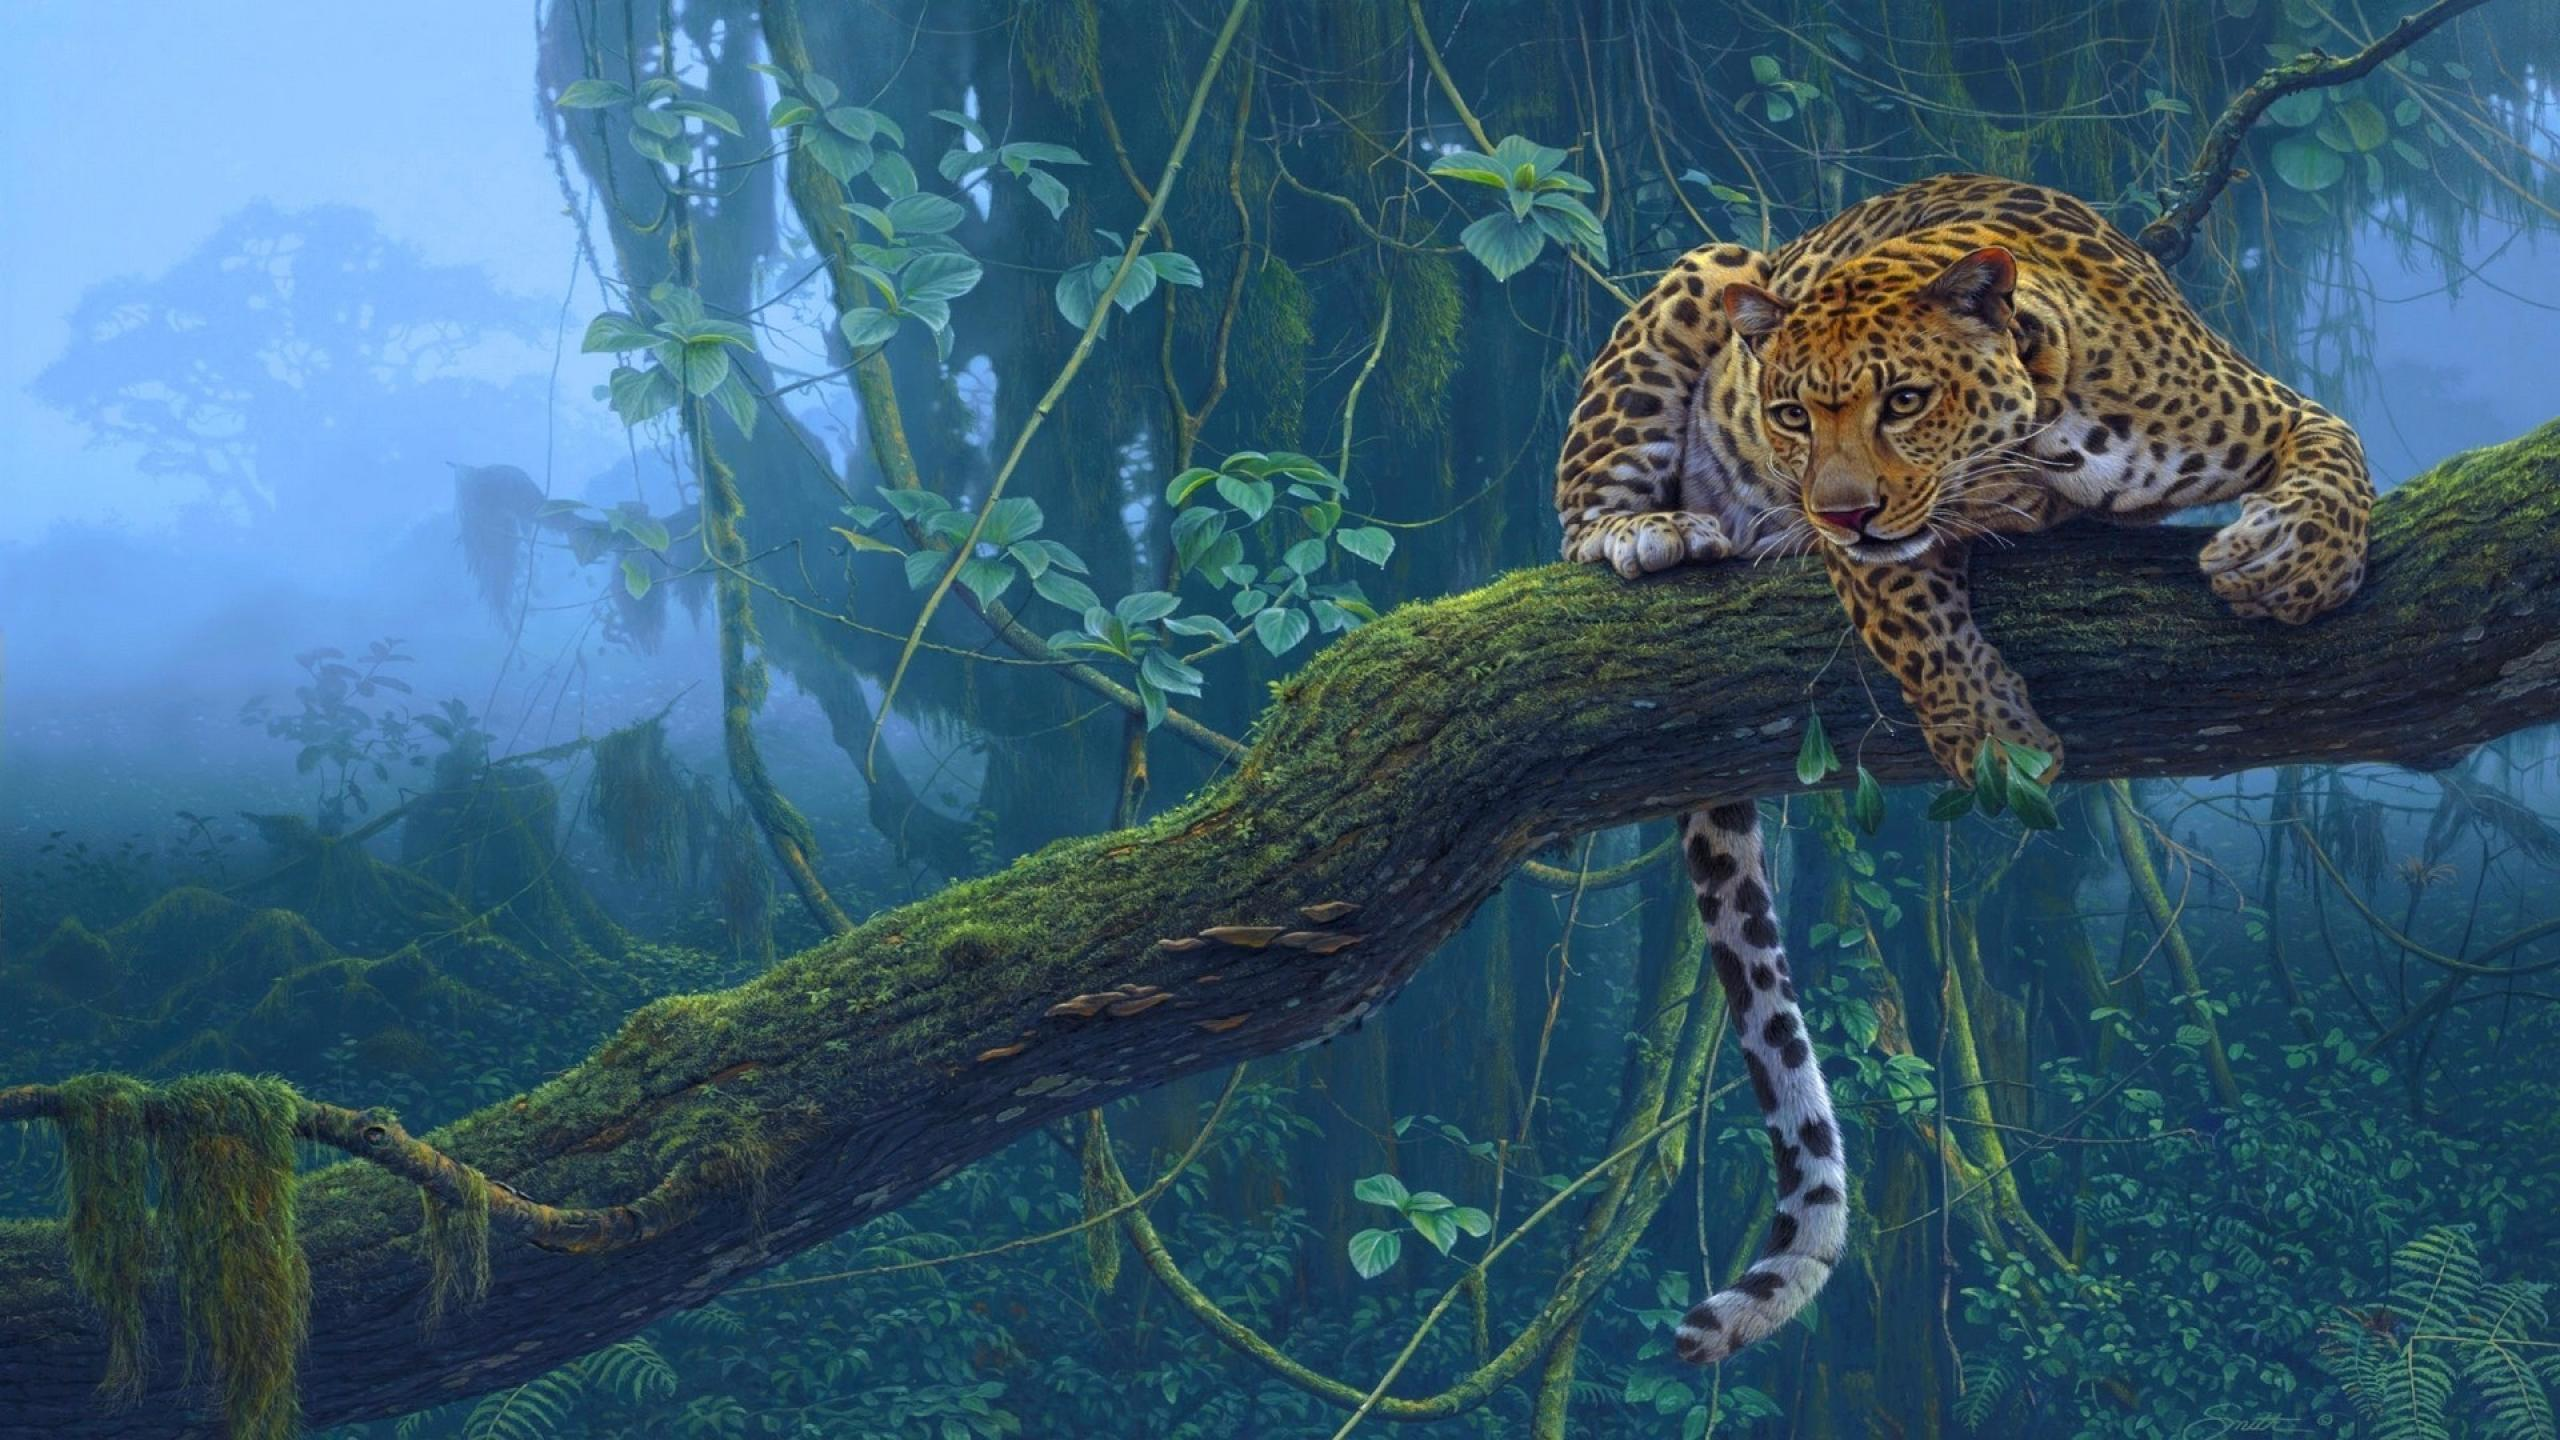 Leopard Full Hd Wallpaper And Background Image 2560x1440